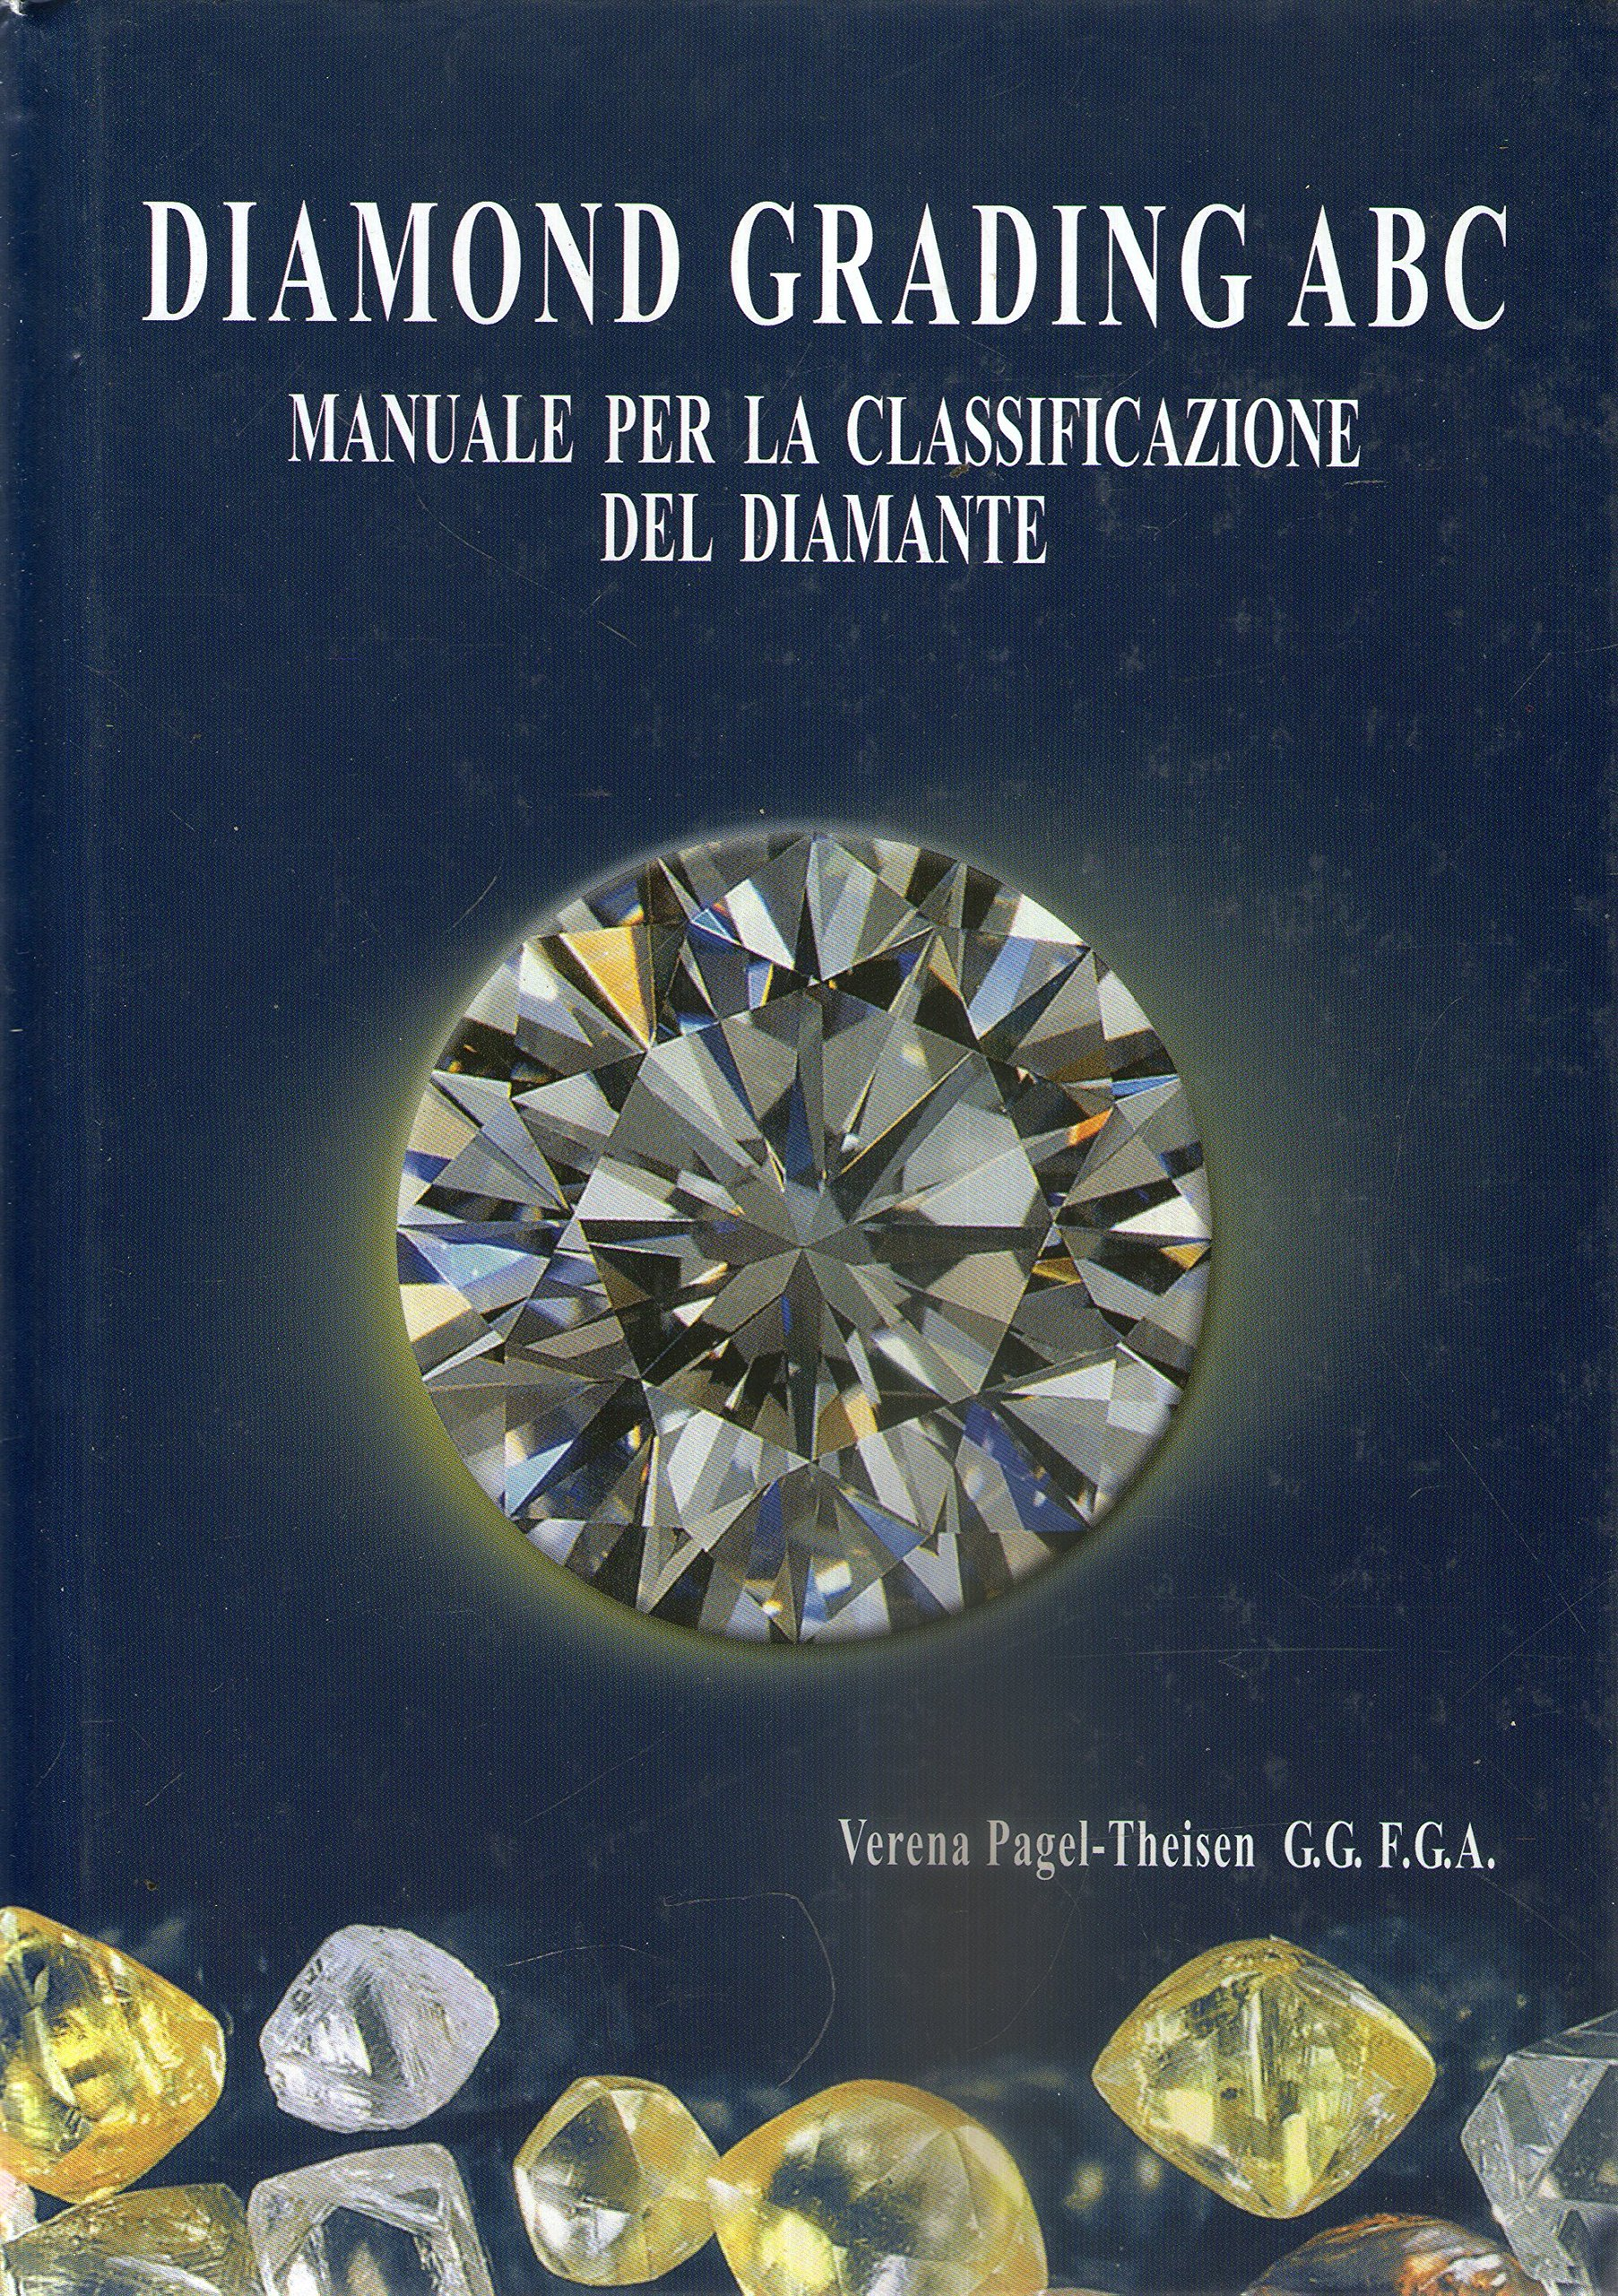 Diamond Grading ABC The Manual. Occurence, Mining, Trade. Quality  Evaluation of Colour, Clarity, Cut: Verena Pagel-Thiesen: 9783980043465:  Amazon.com: Books